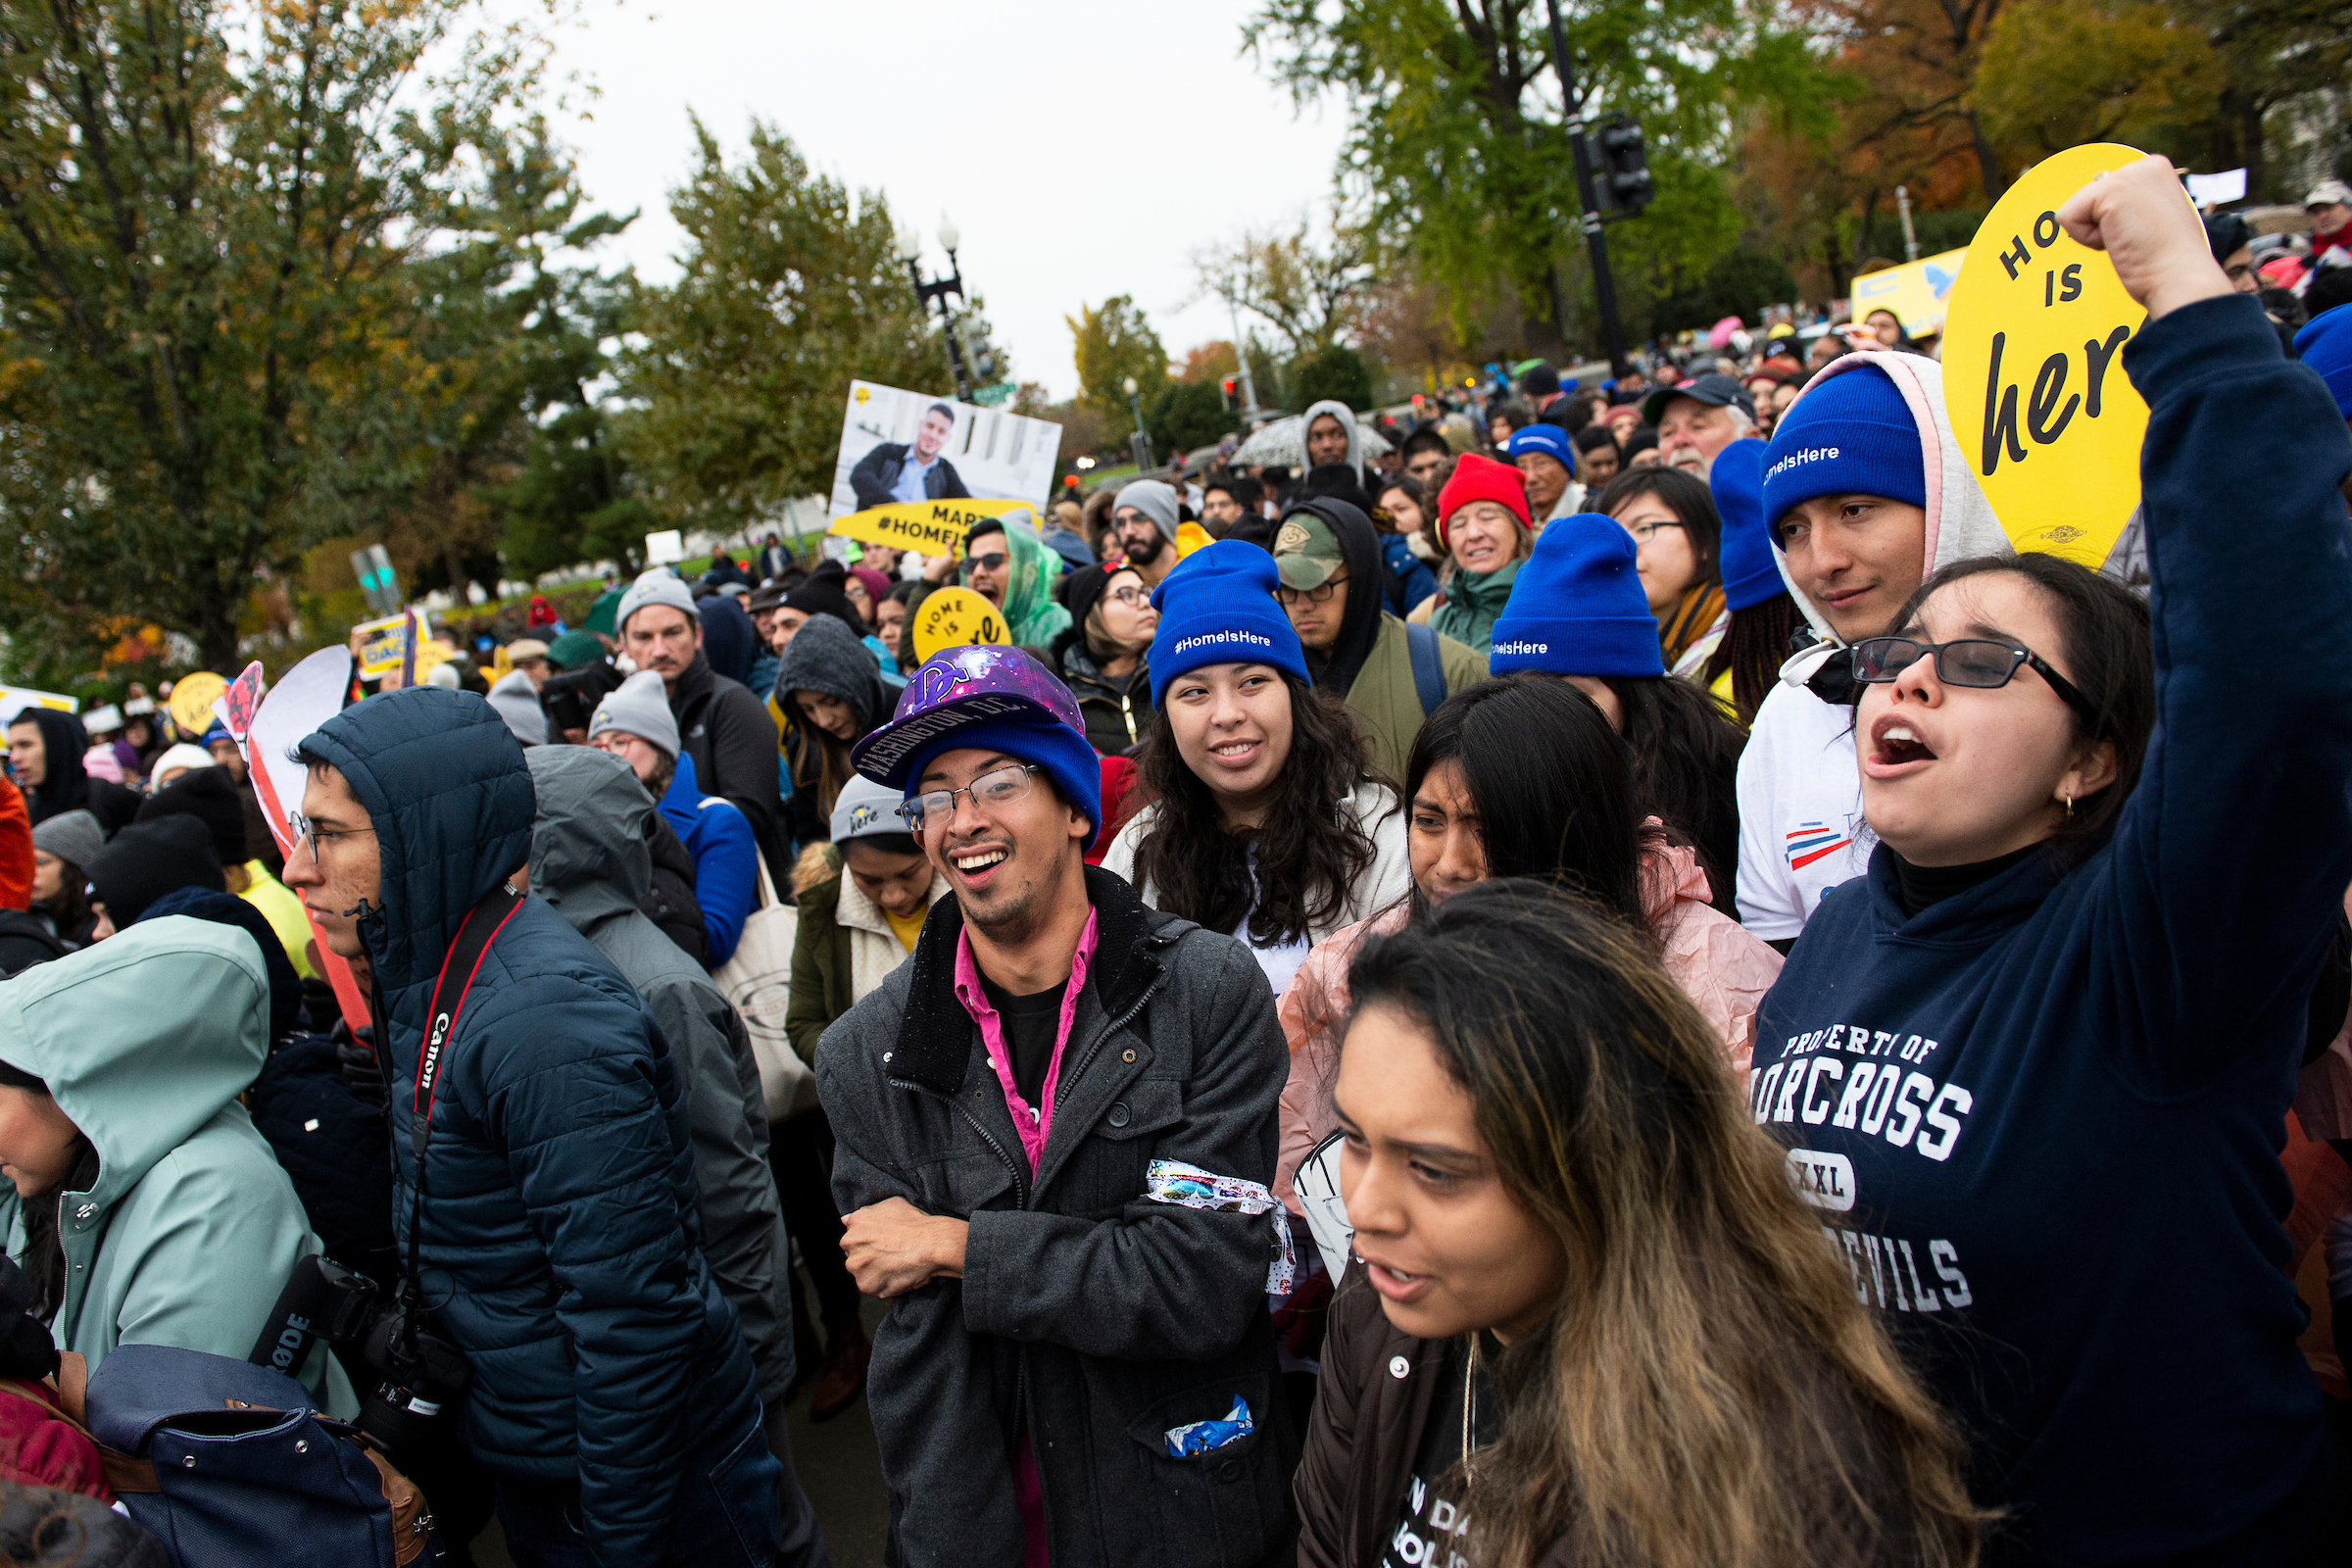 Protesters gather outside of the U.S. Supreme Court on Tuesday as the court hears arguments on the Trump administration's decision to end the Deferred Action for Childhood Arrivals program. (Caroline Brehman/CQ Roll Call)